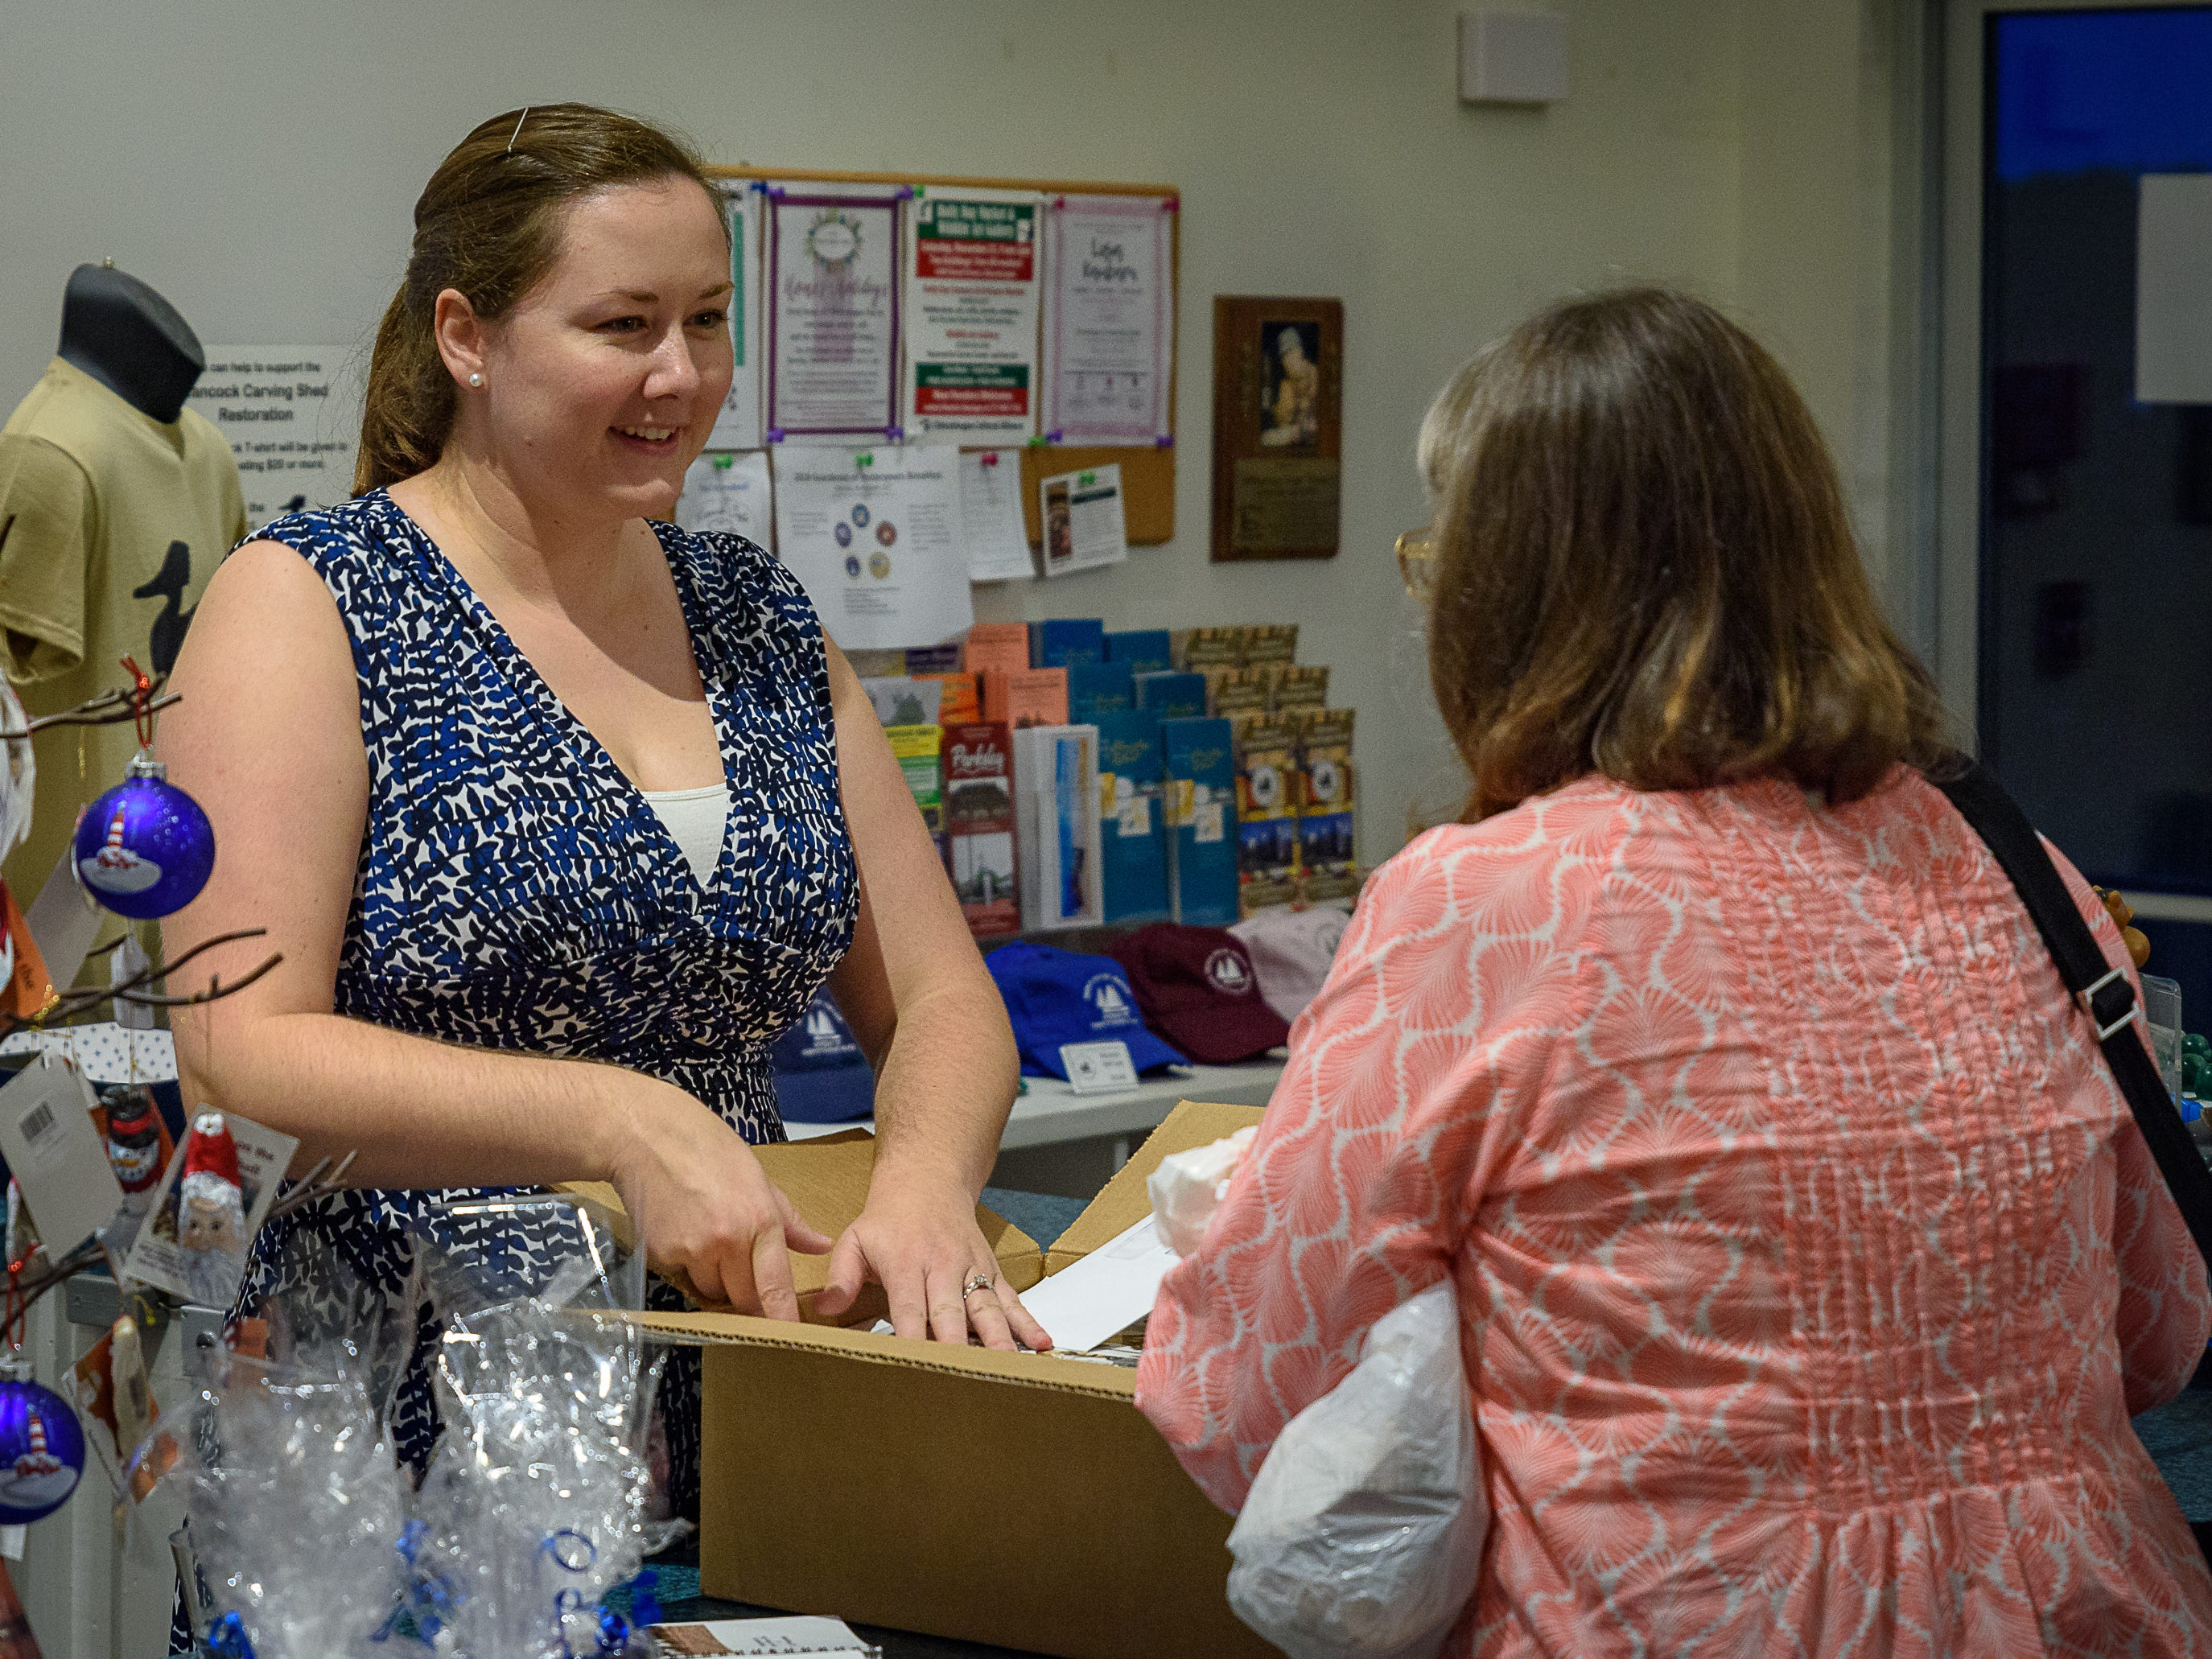 Maria Grenchik, executive director of the Museum of Chincoteague,  goes over some items with a patron at the event.